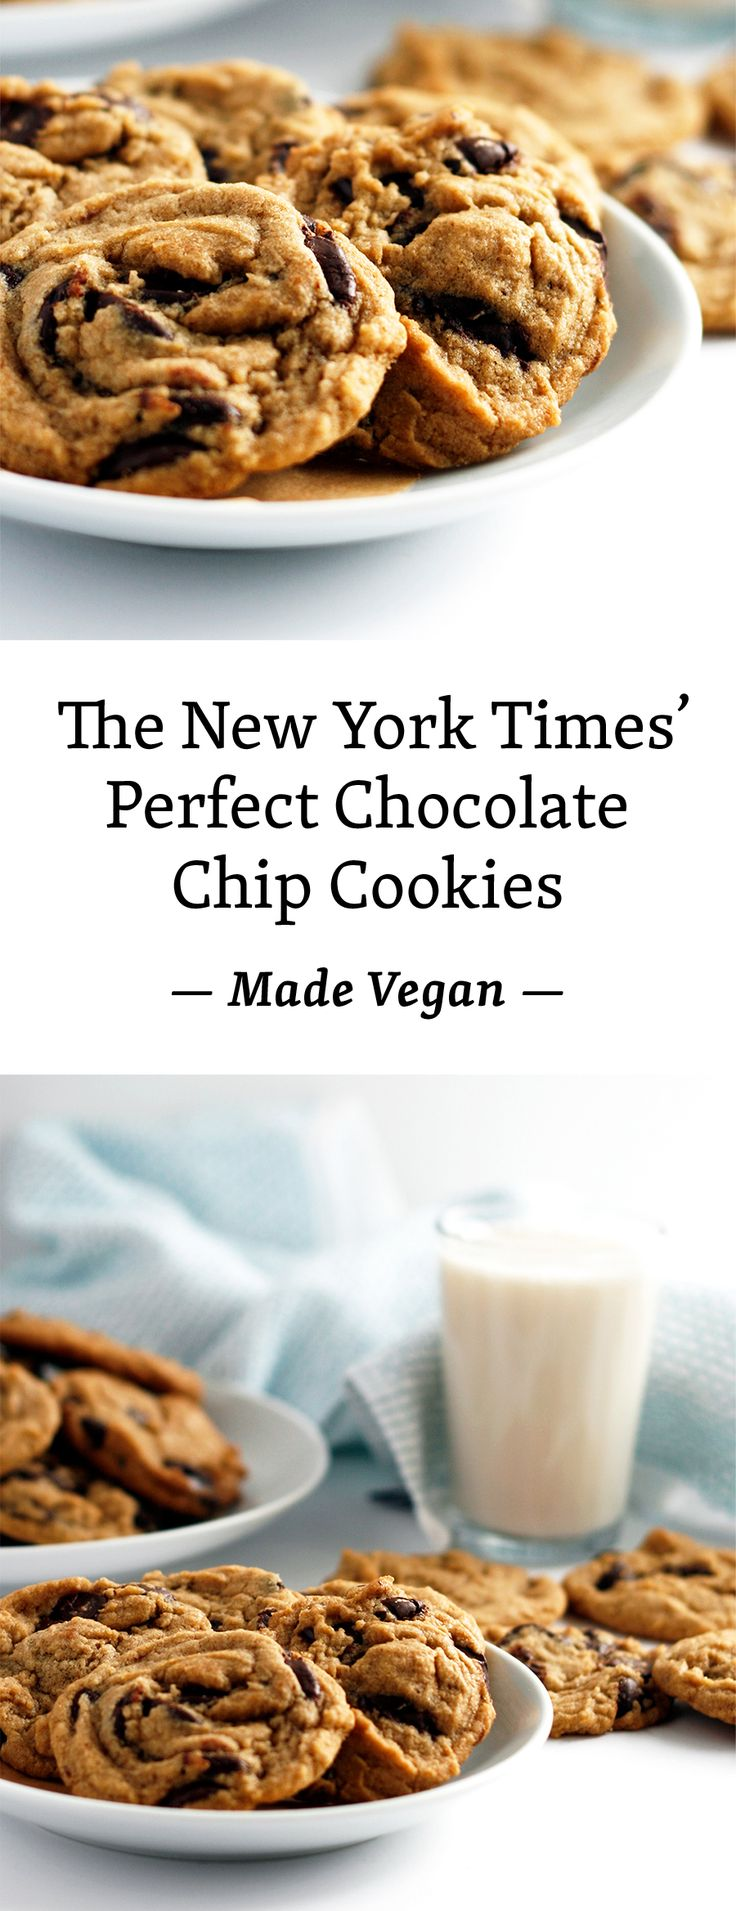 A vegan adaptation of the New York Times' perfect chocolate chip cookie. Made with bittersweet chocolate and flake sea salt, it's the essential cookie.